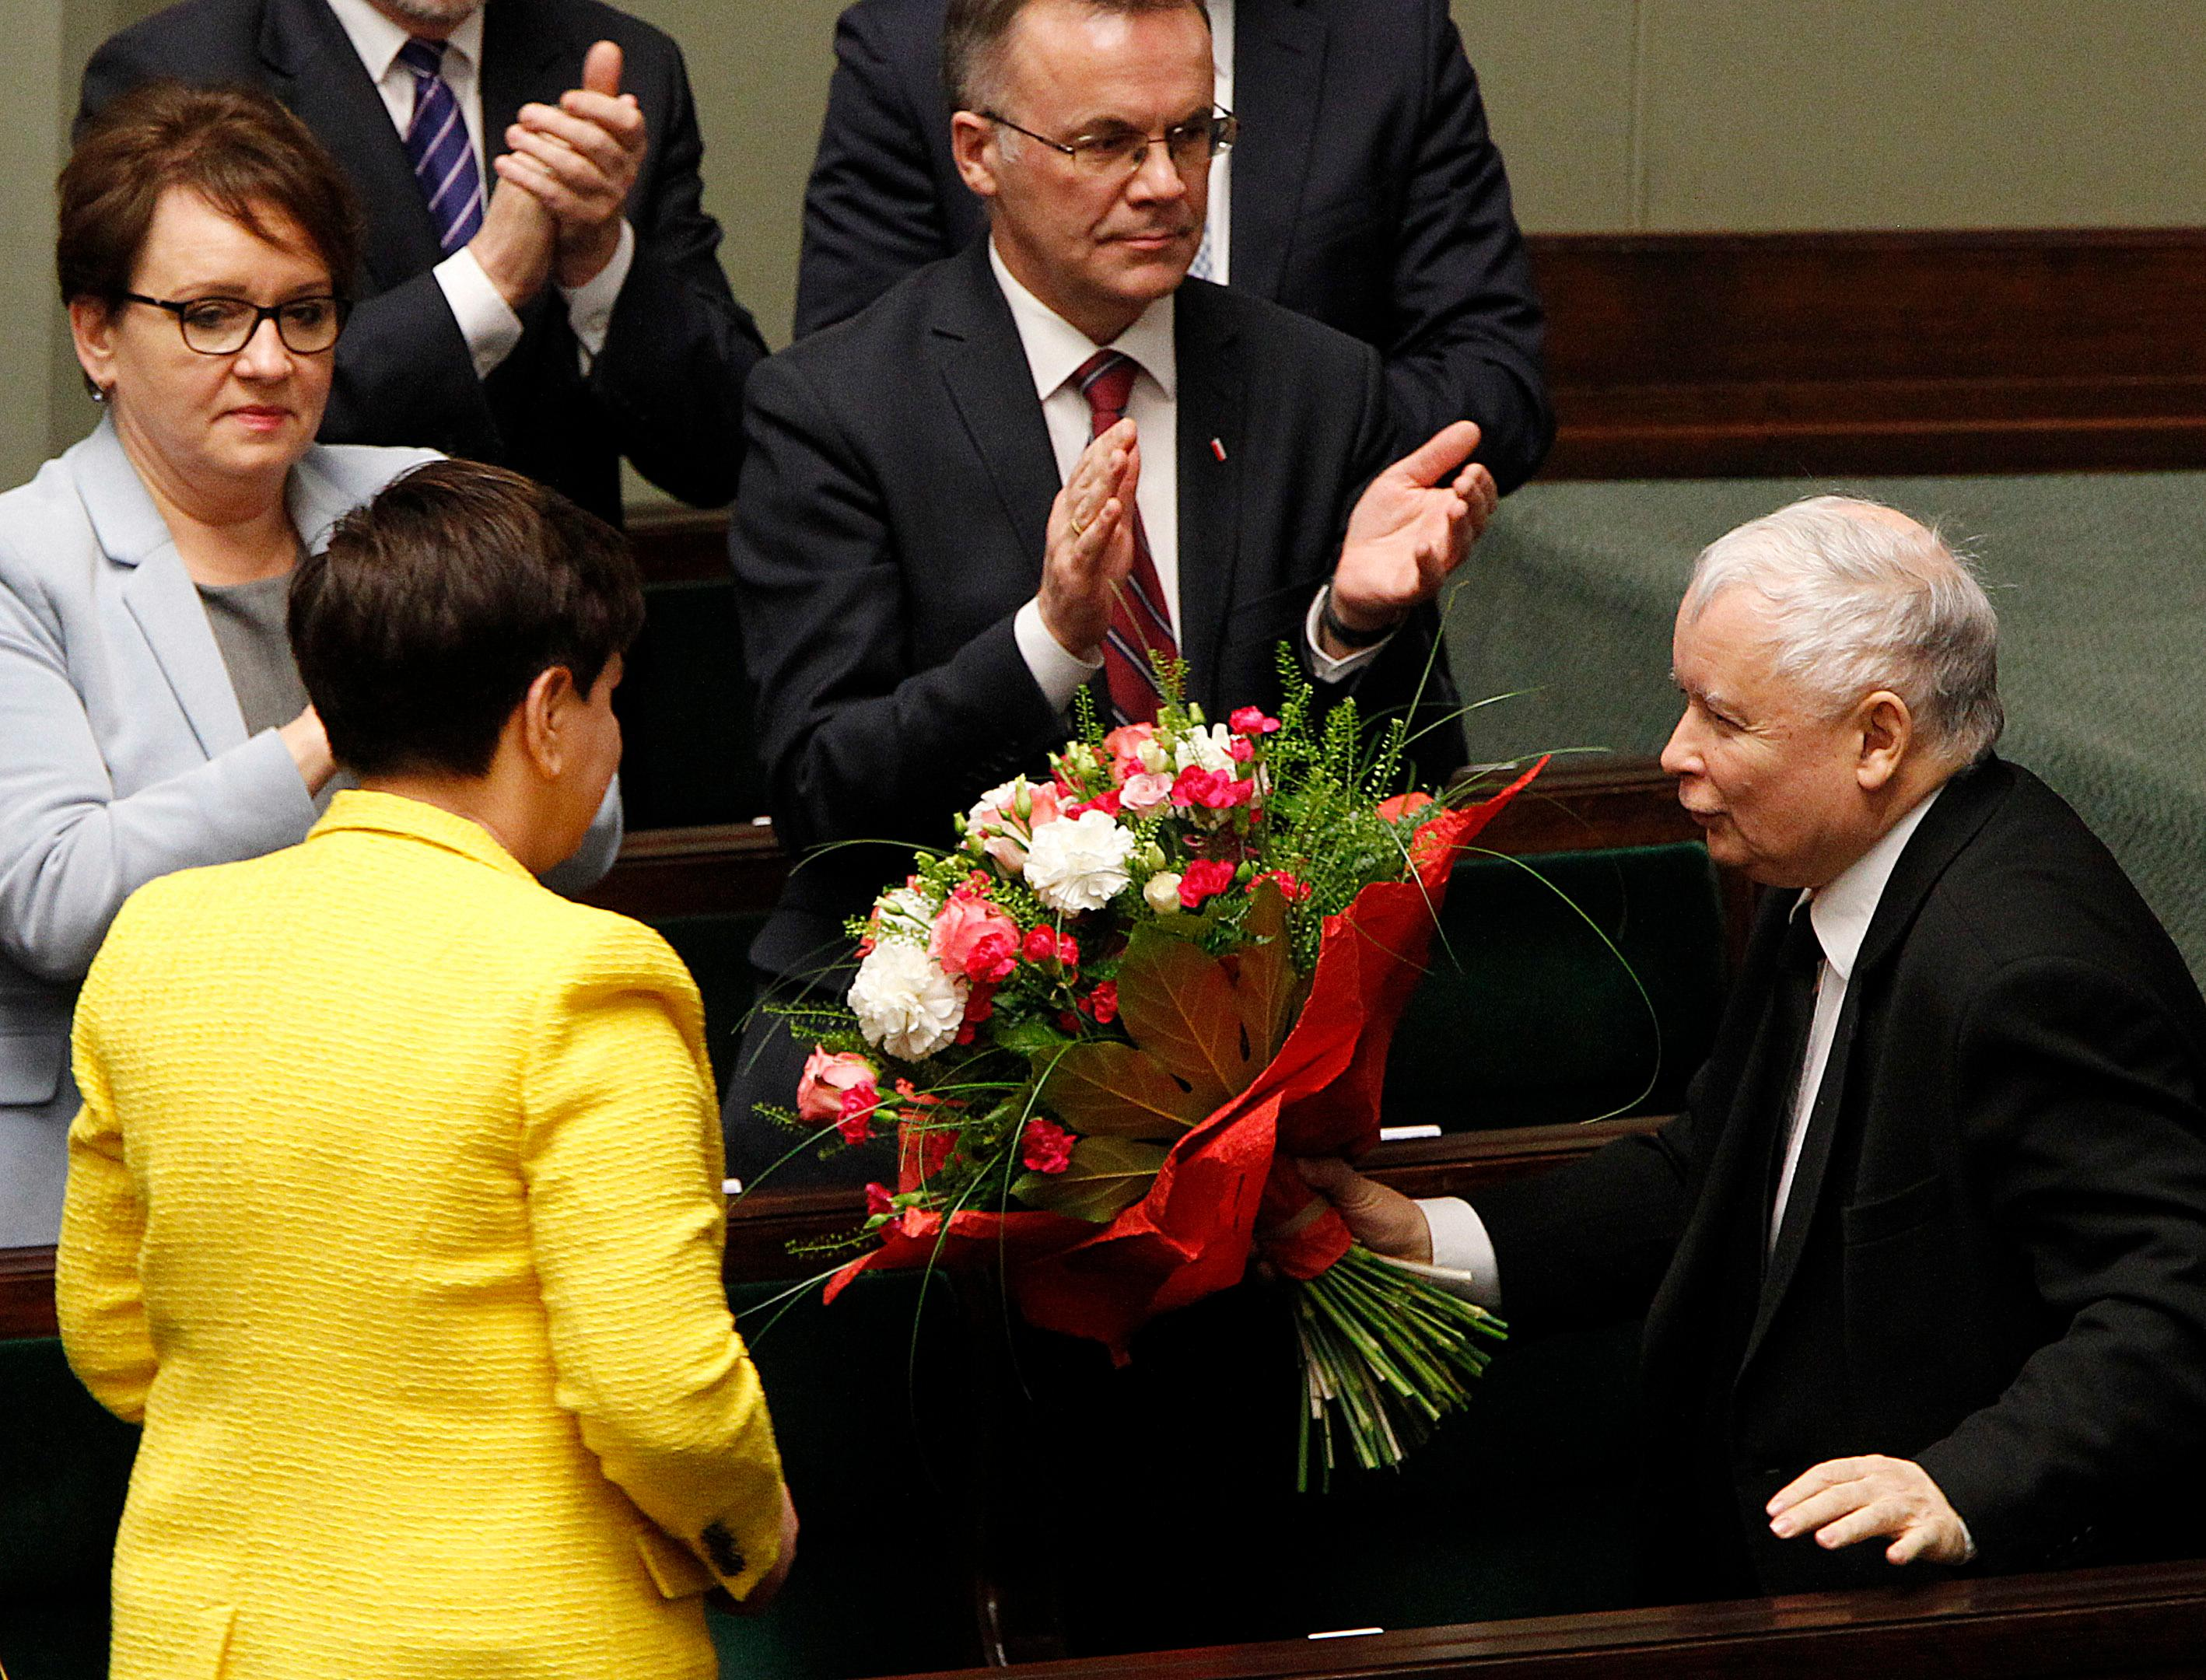 Jaroslaw Kaczynski, the powerful leader of Poland's ruling Law and Justice party congratulates Prime Minister Beata Szydlo after her government survived a vote in which the opposition was seeking to oust it, at the parliament buildingin Warsaw, Poland, Thursday, Dec. 7, 2017. (AP Photo/Czarek Sokolowski)